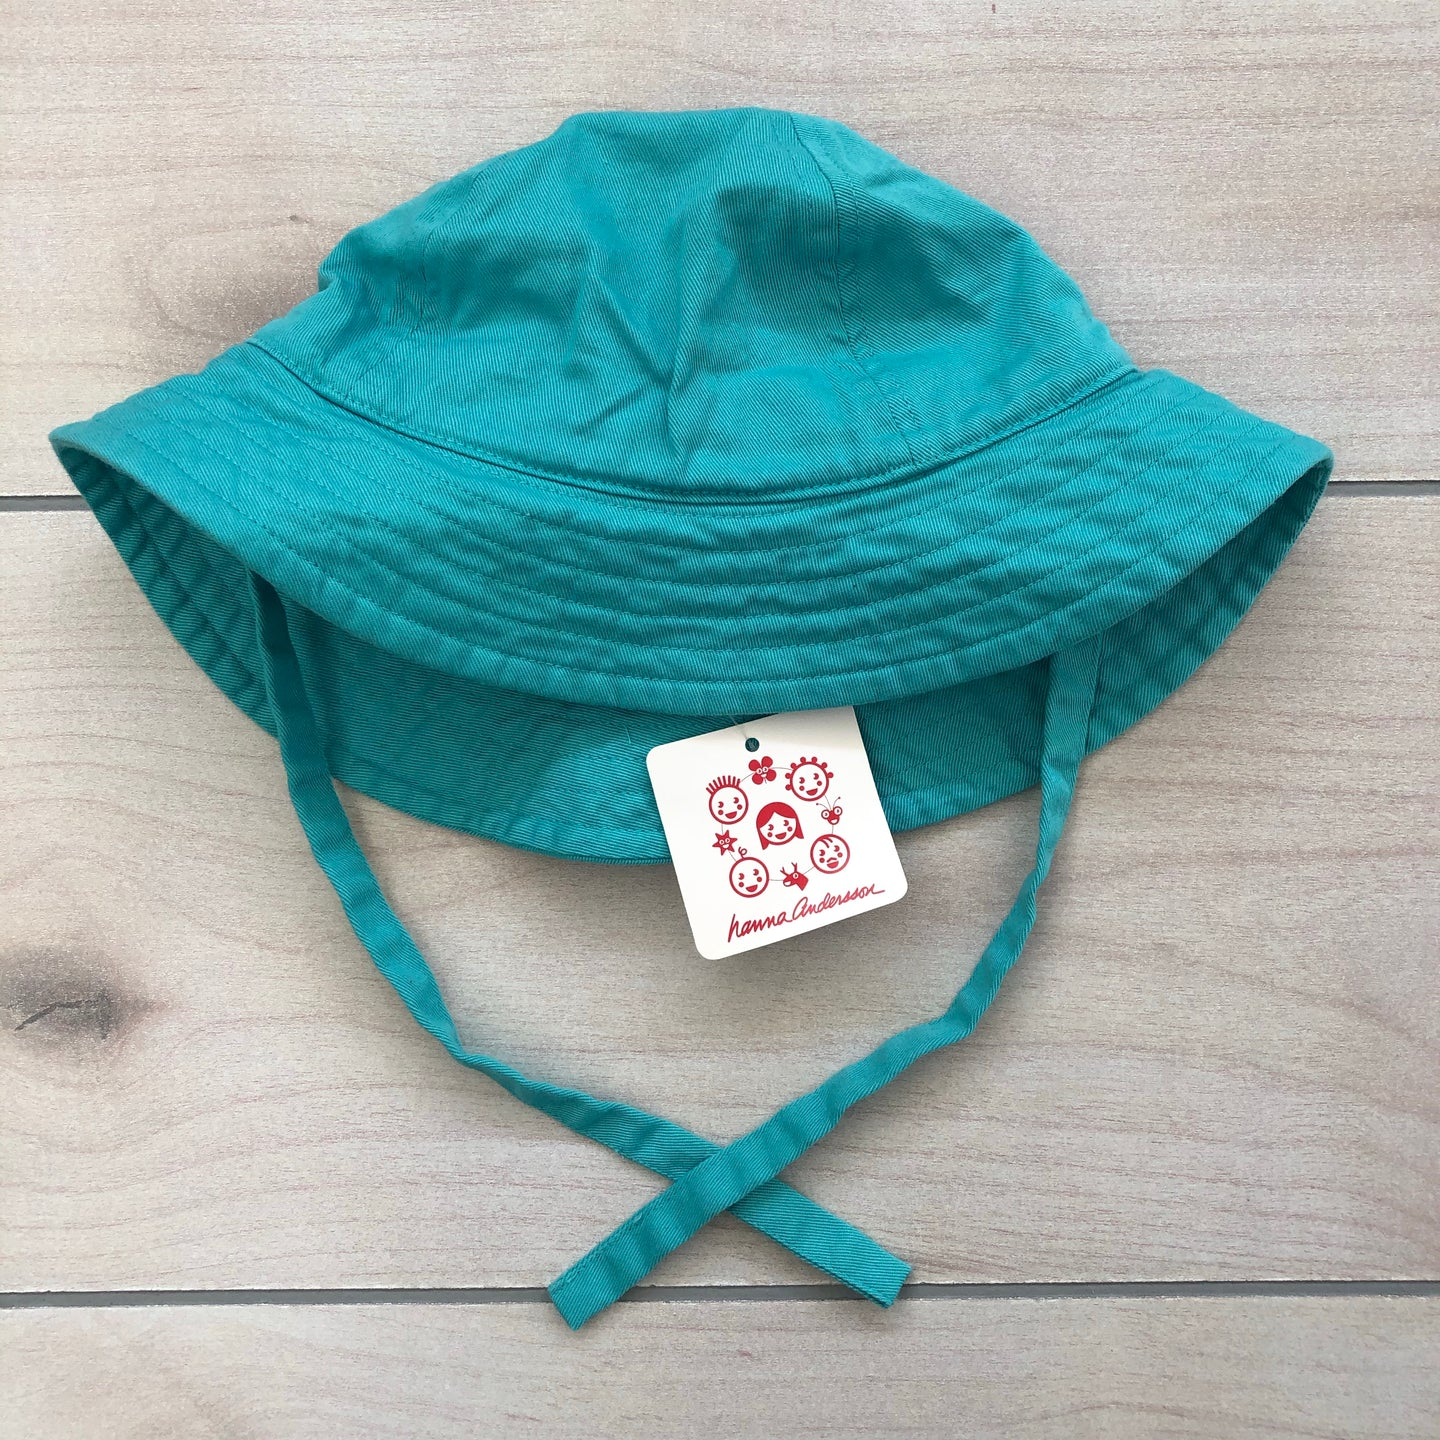 Hanna Andersson Turquoise Sun Hat Size Small NWT